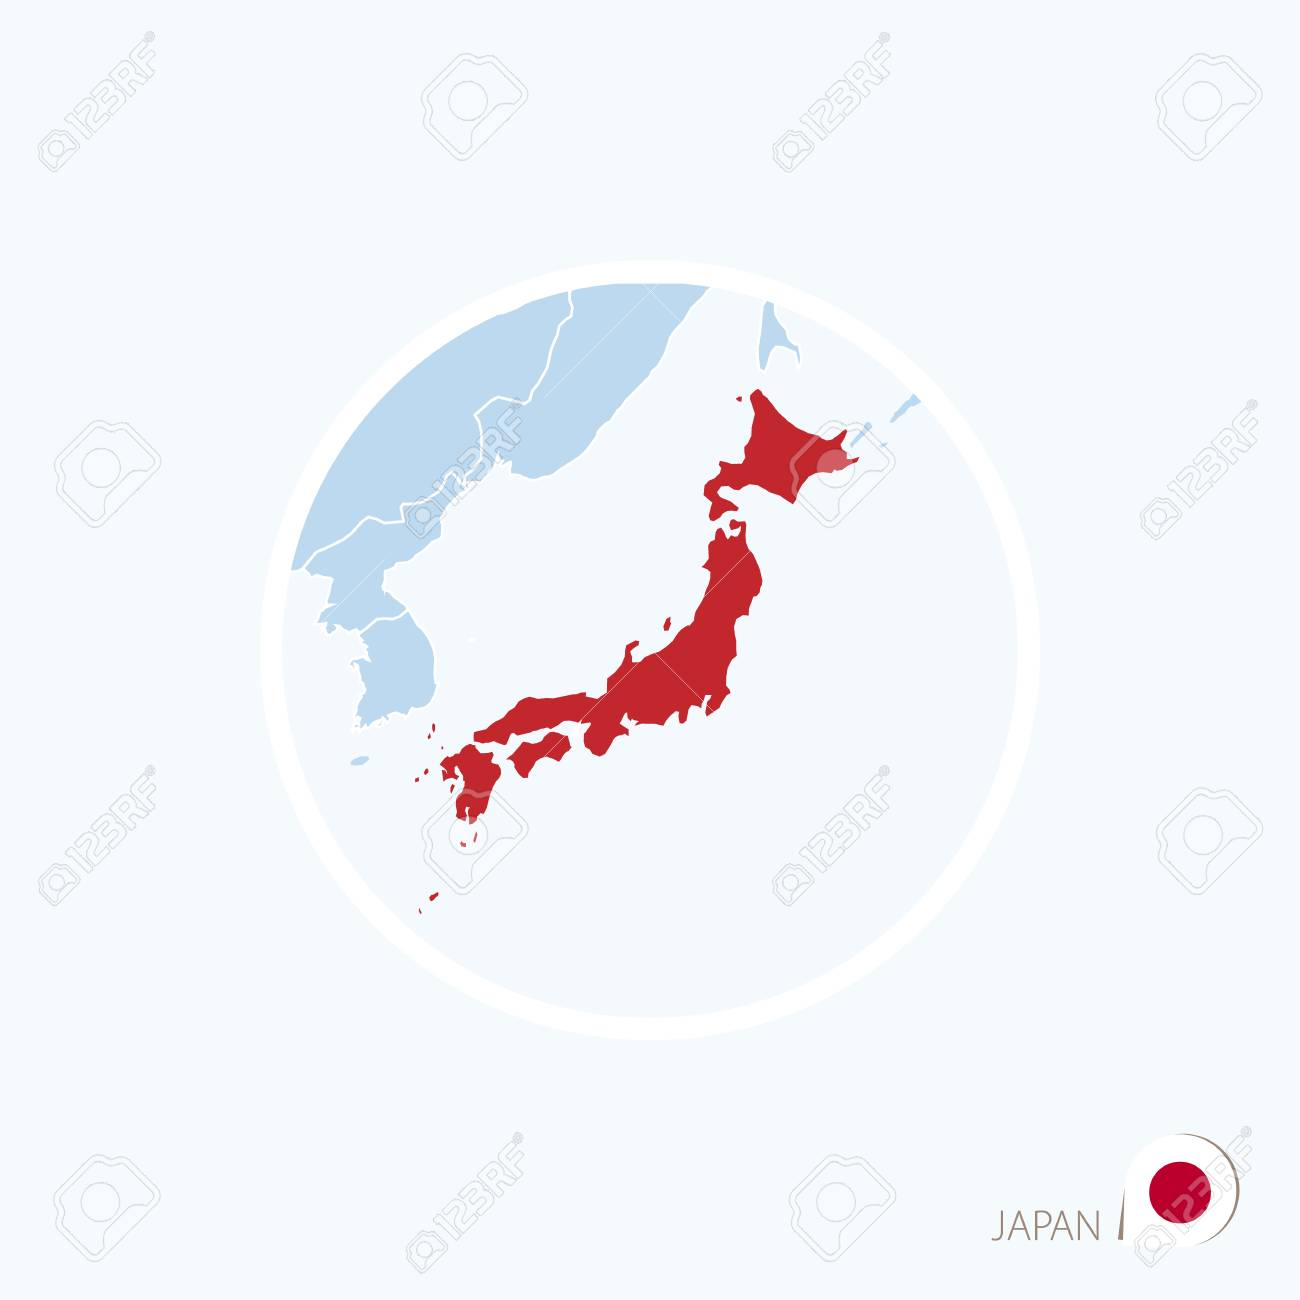 Picture of: Map Icon Of Japan Blue Map Of East Asia With Highlighted Japan Royalty Free Cliparts Vectors And Stock Illustration Image 72222133